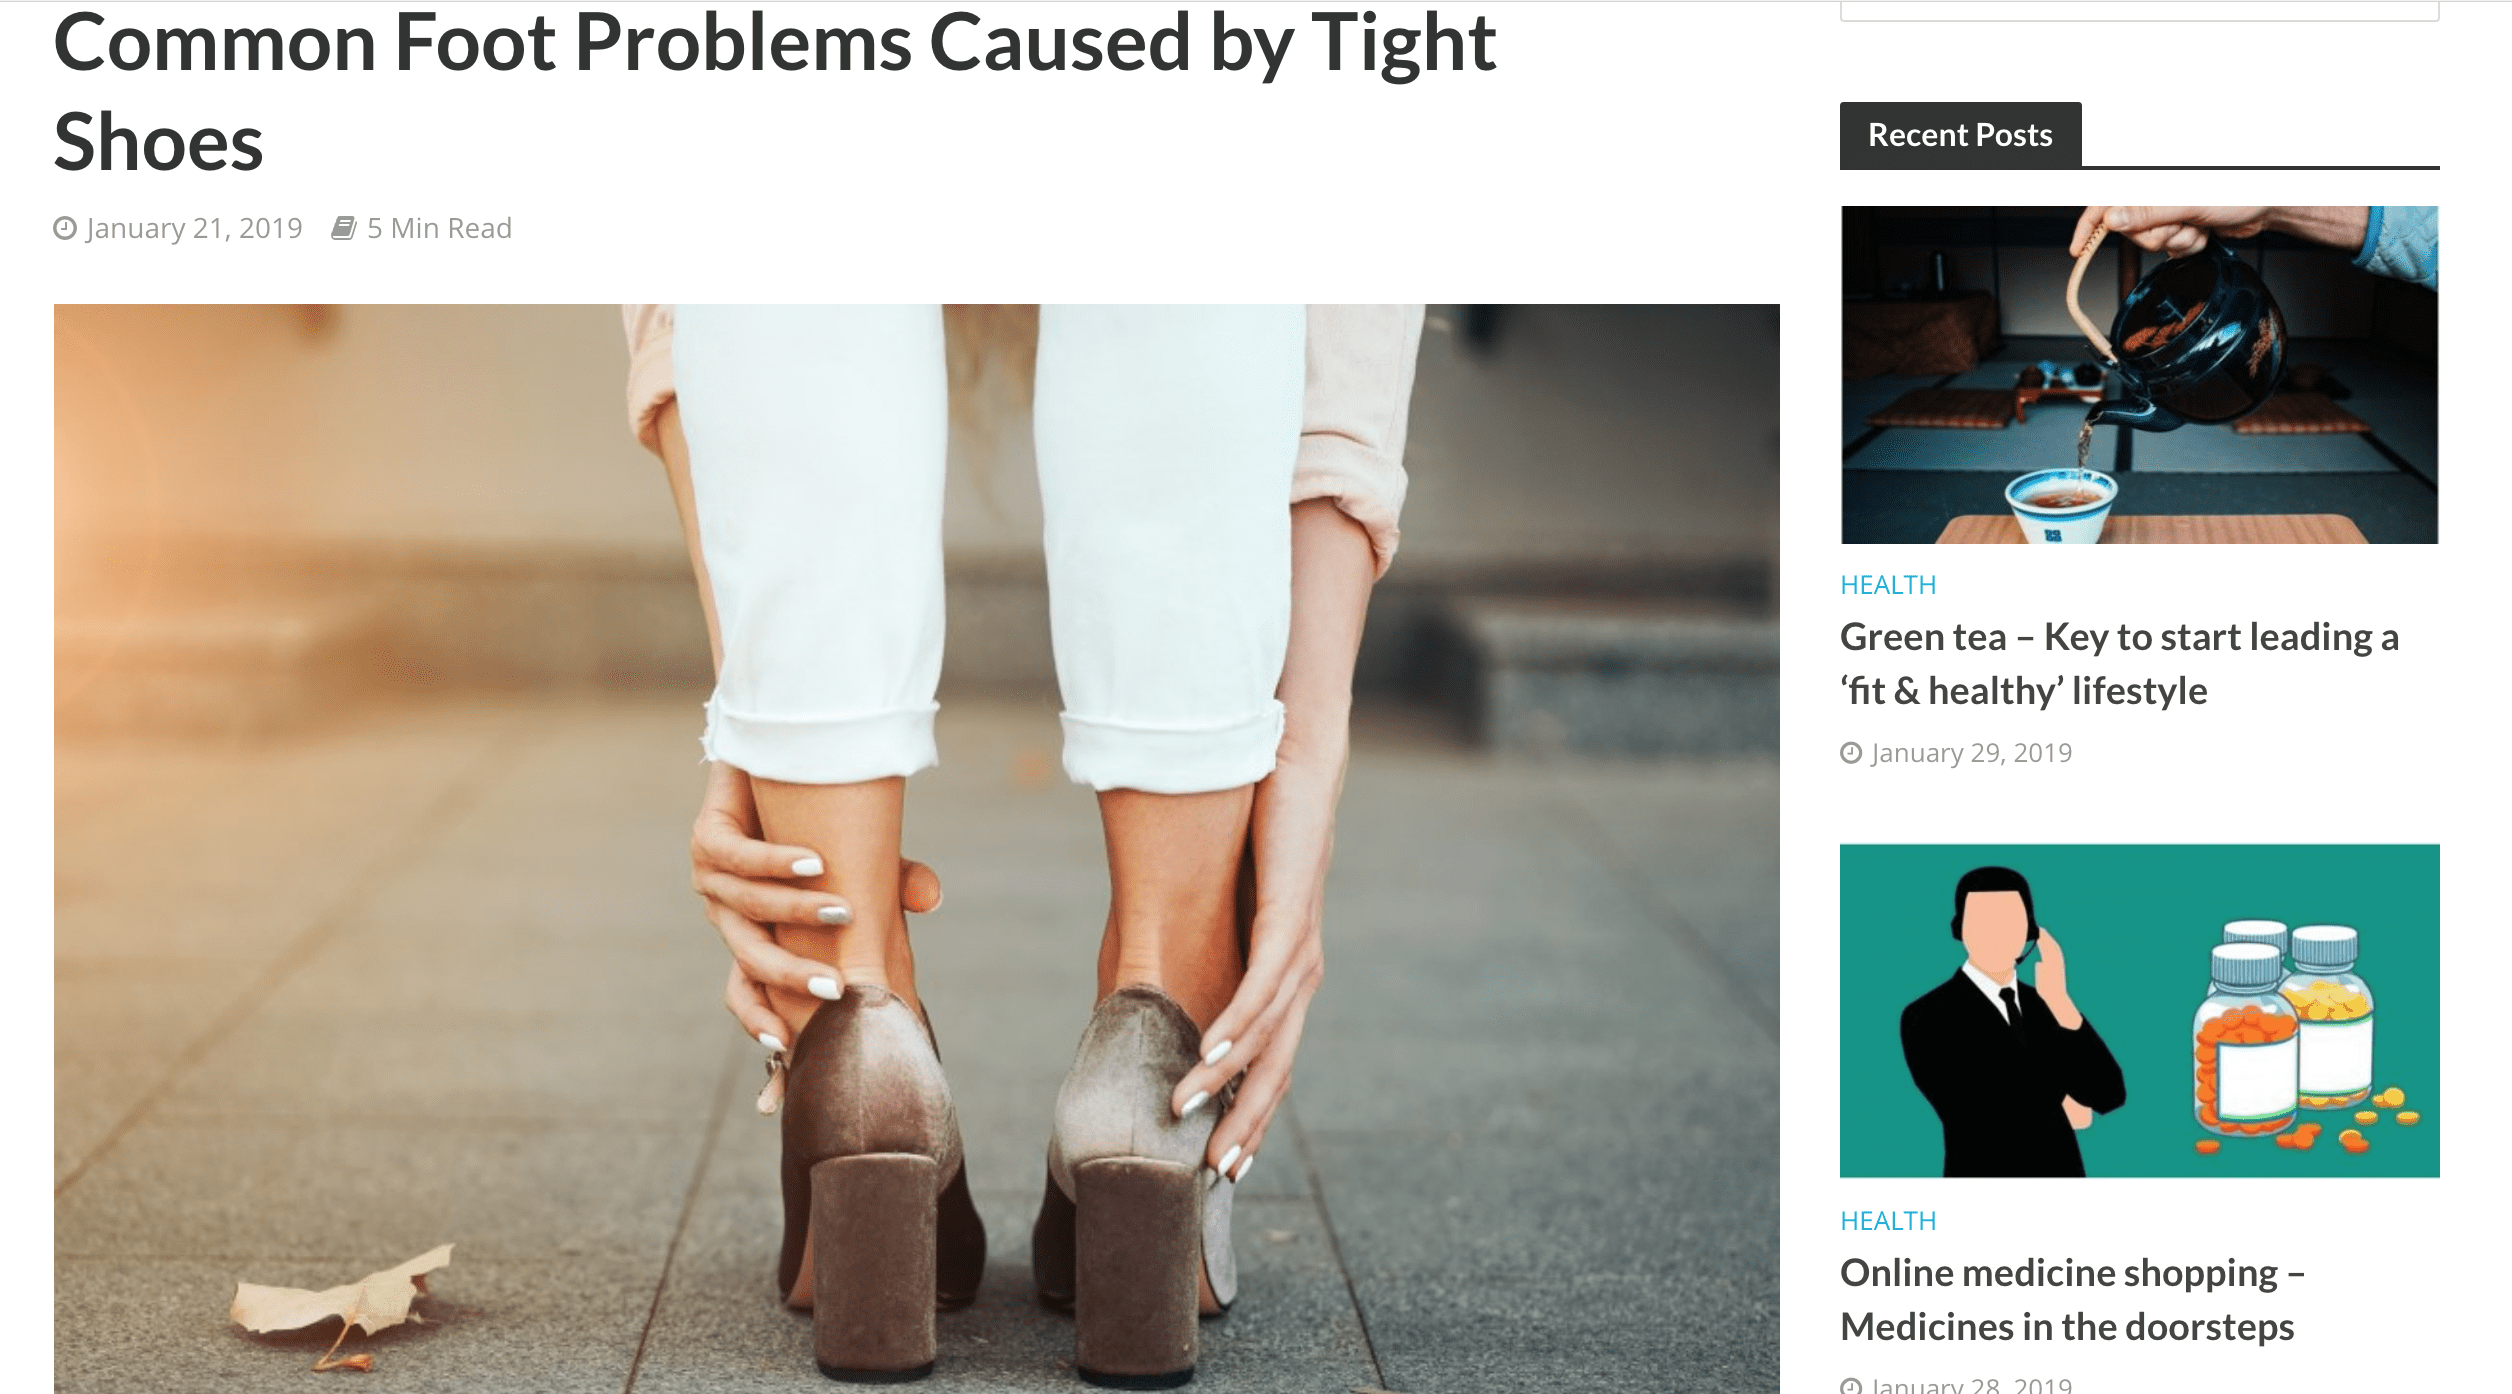 Common Foot Problems Caused by Tight Shoes